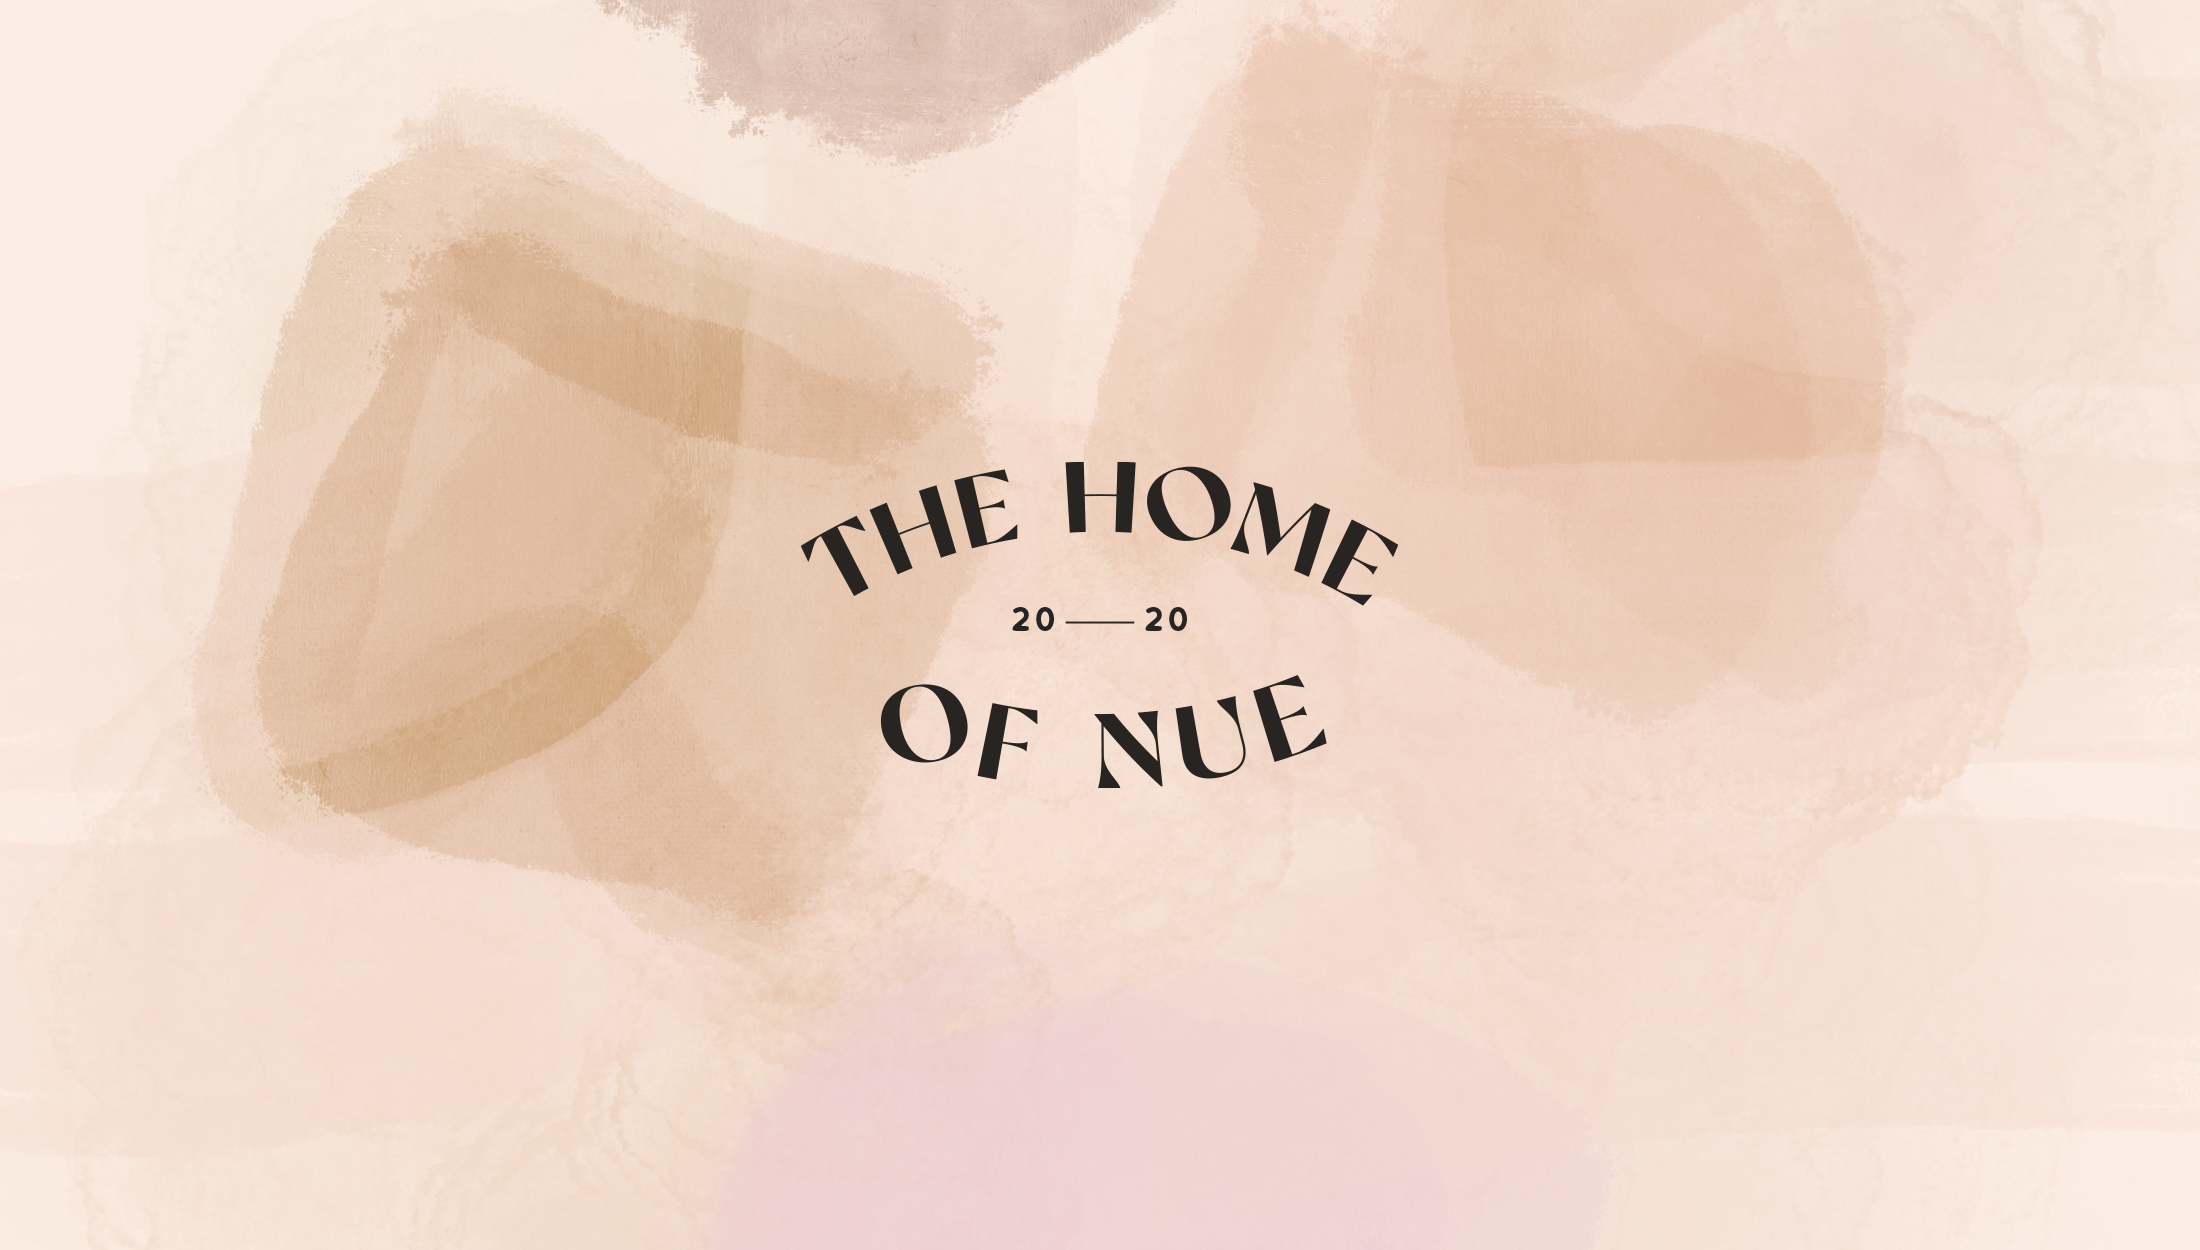 Logomark for Nue, home, beauty & lifestyle brand specialsing in nude shades for their products - designed by Wiltshire-based graphic designer, Kaye Huett